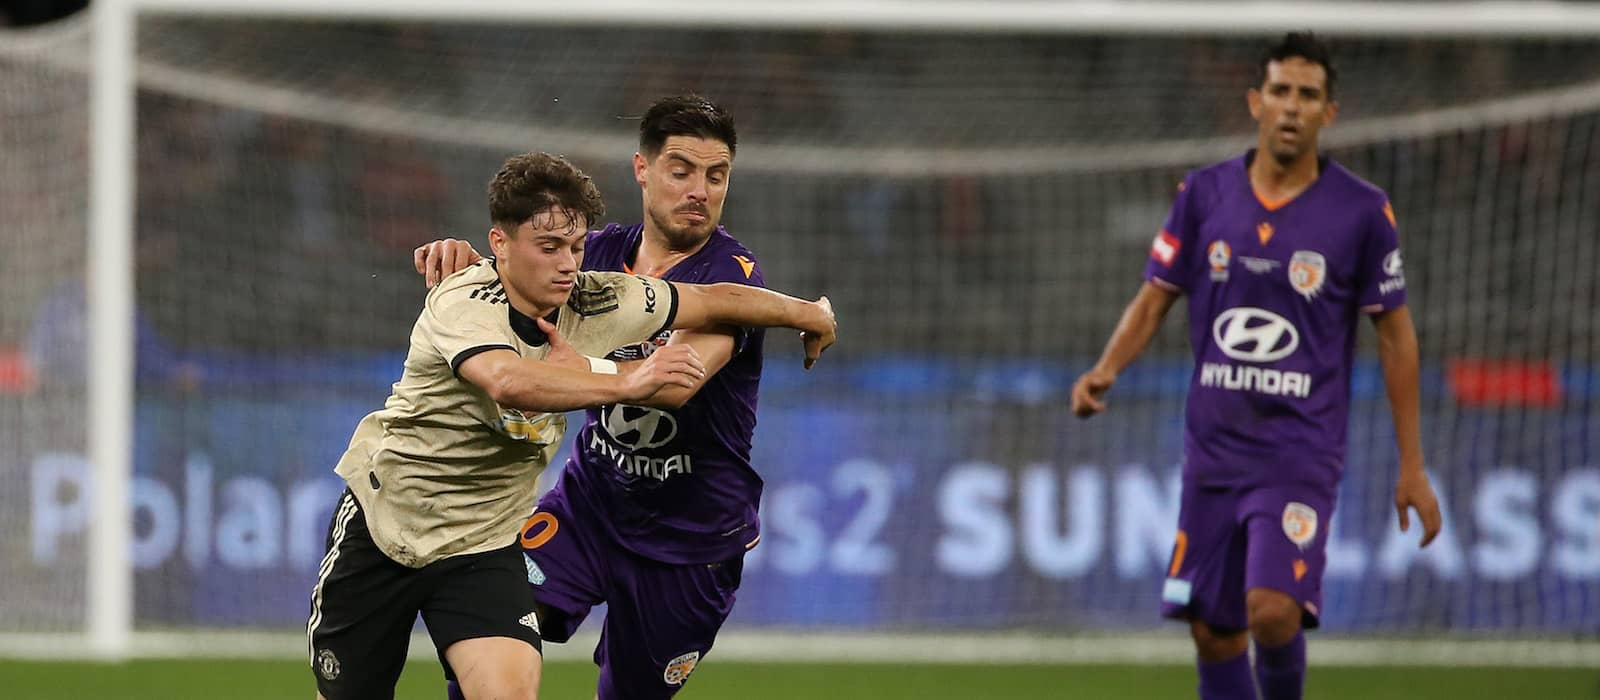 Manchester United vs Leeds United: Potential XI with Daniel James and Mason Greenwood